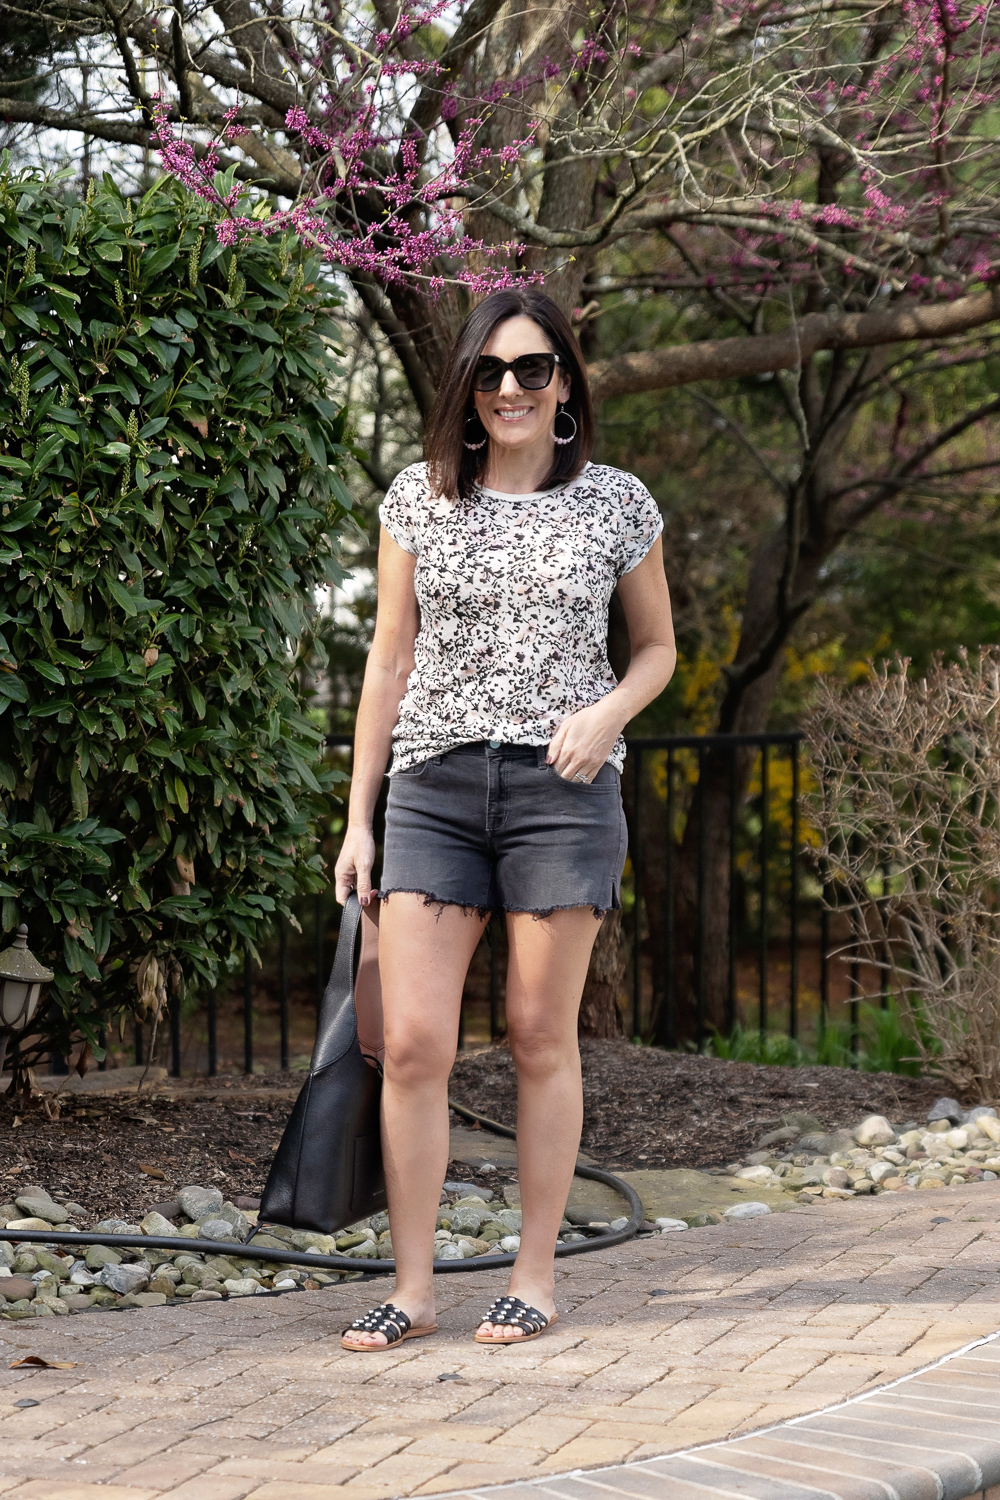 ways to wear shorts over 40, how to wear denim shorts, how to wear shorts over 40, jolynneshane